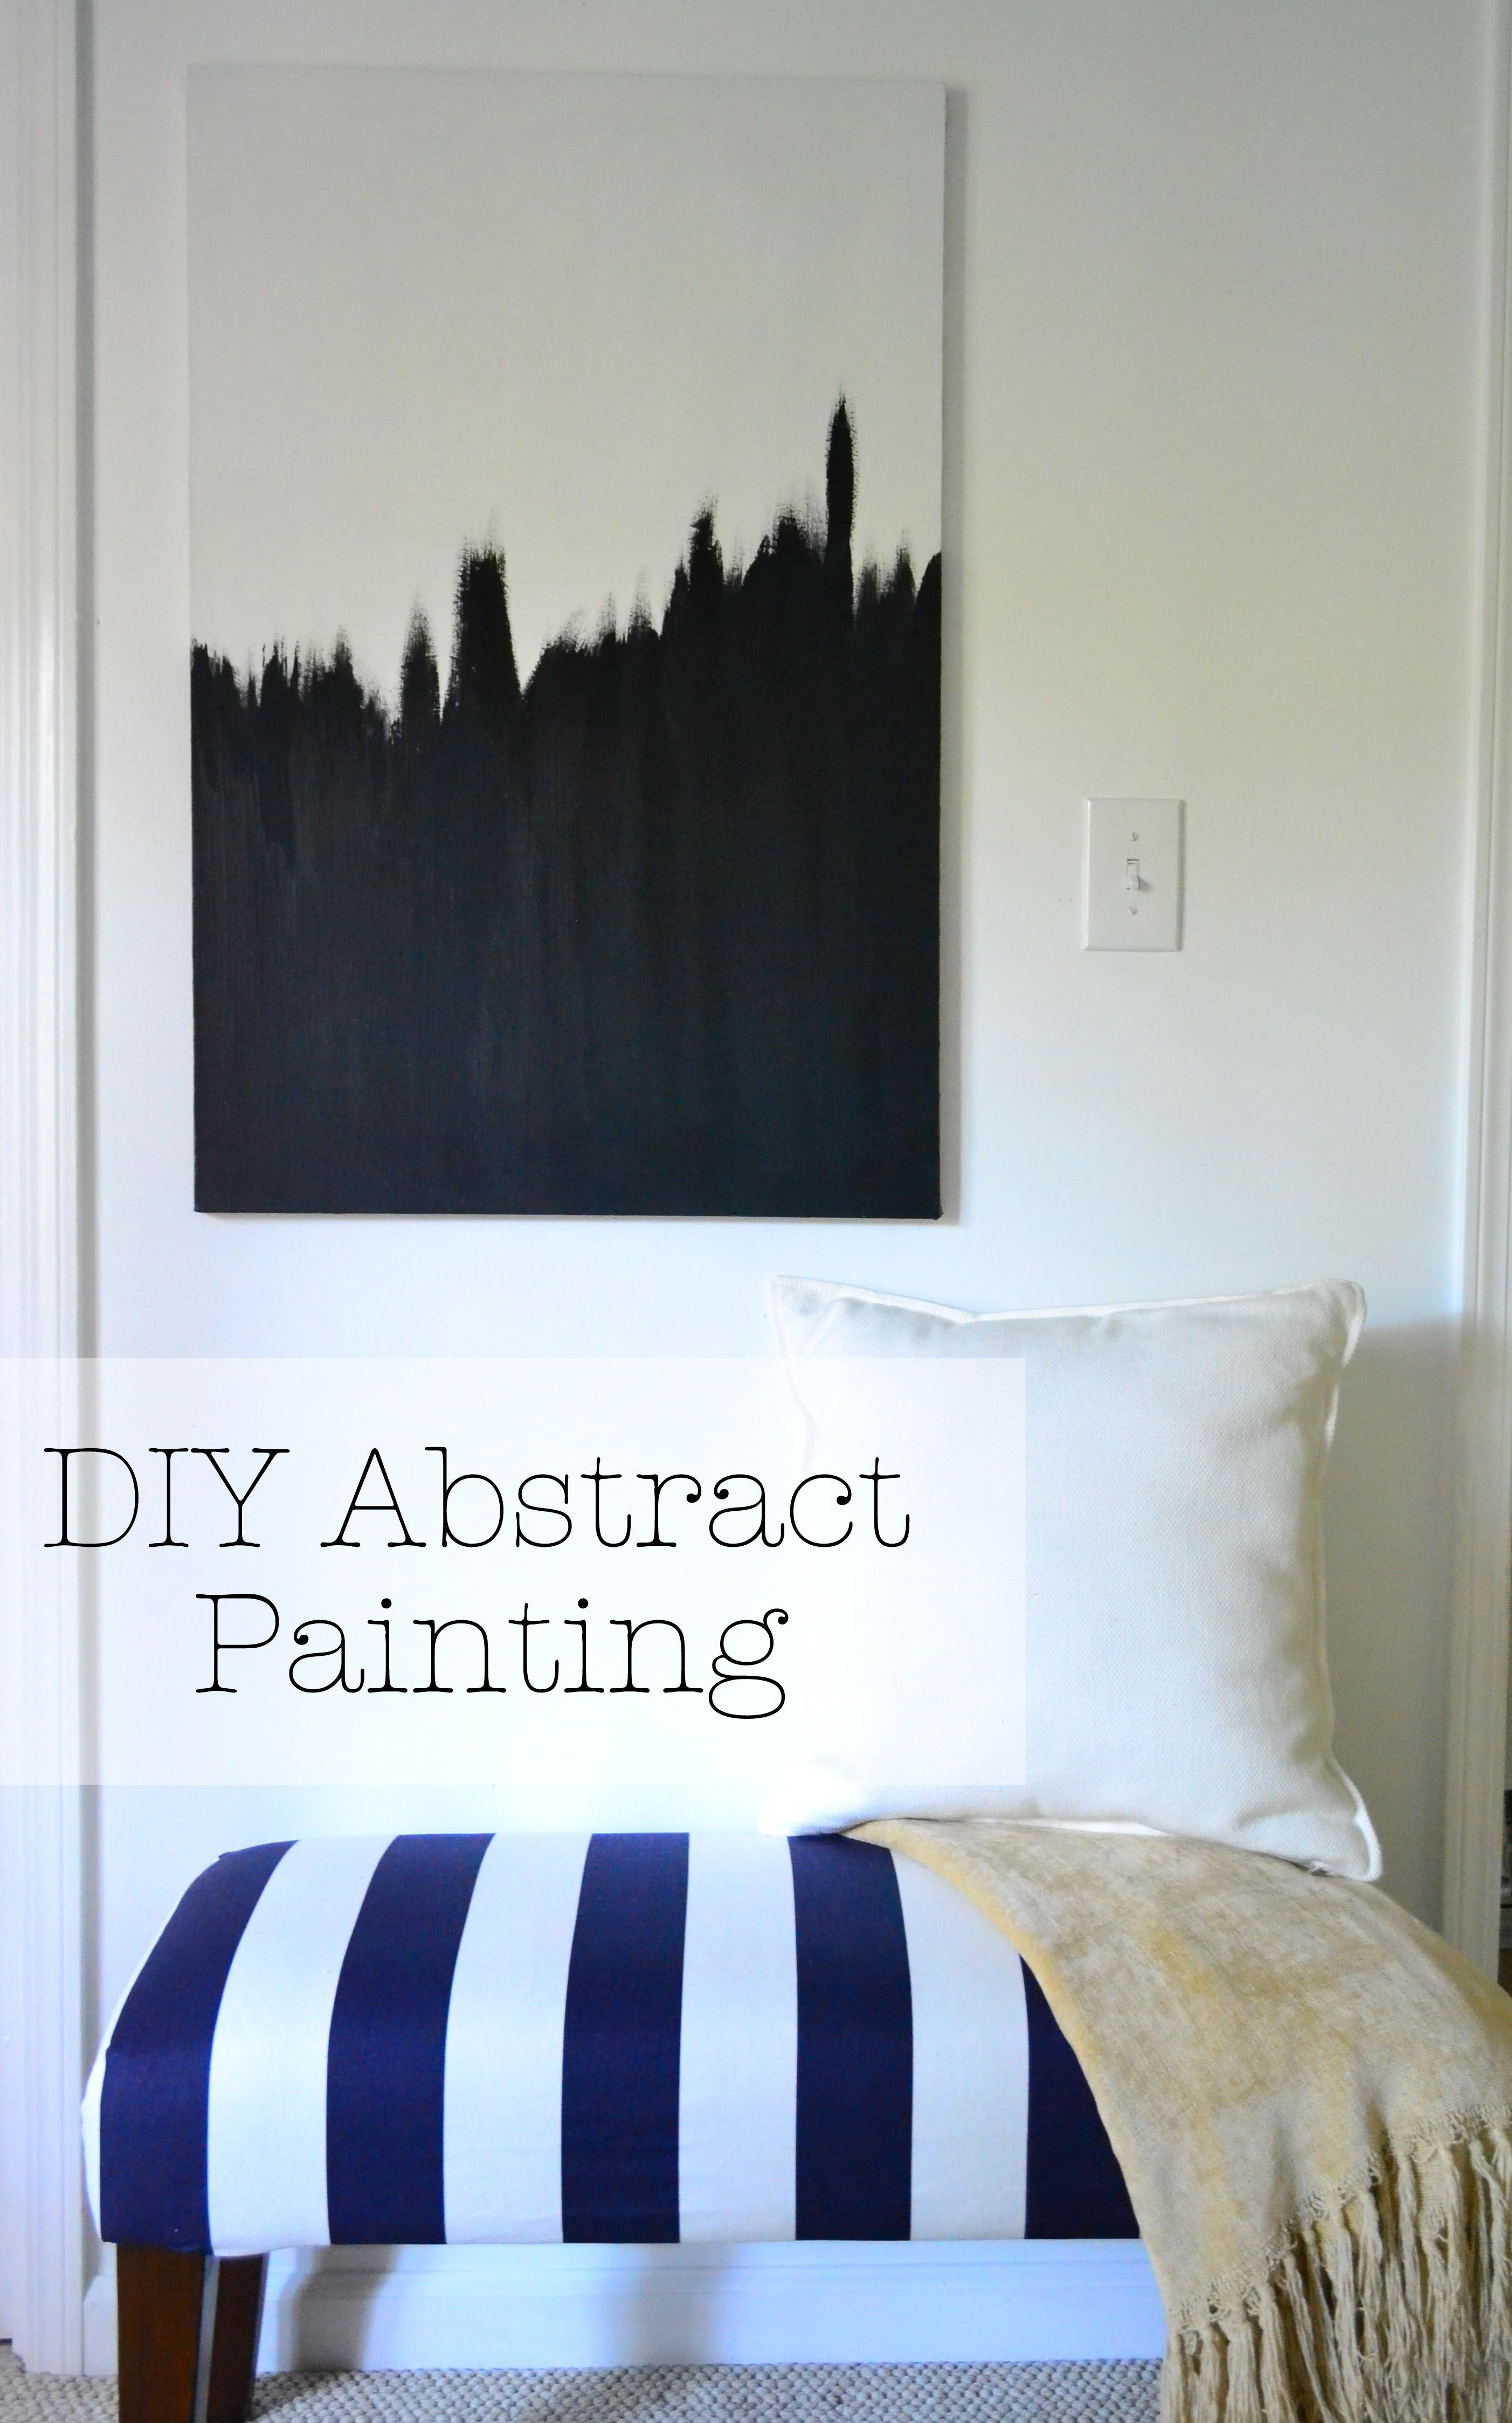 DIY Abstract Painting - could hang three canvas' from ceiling, to ...